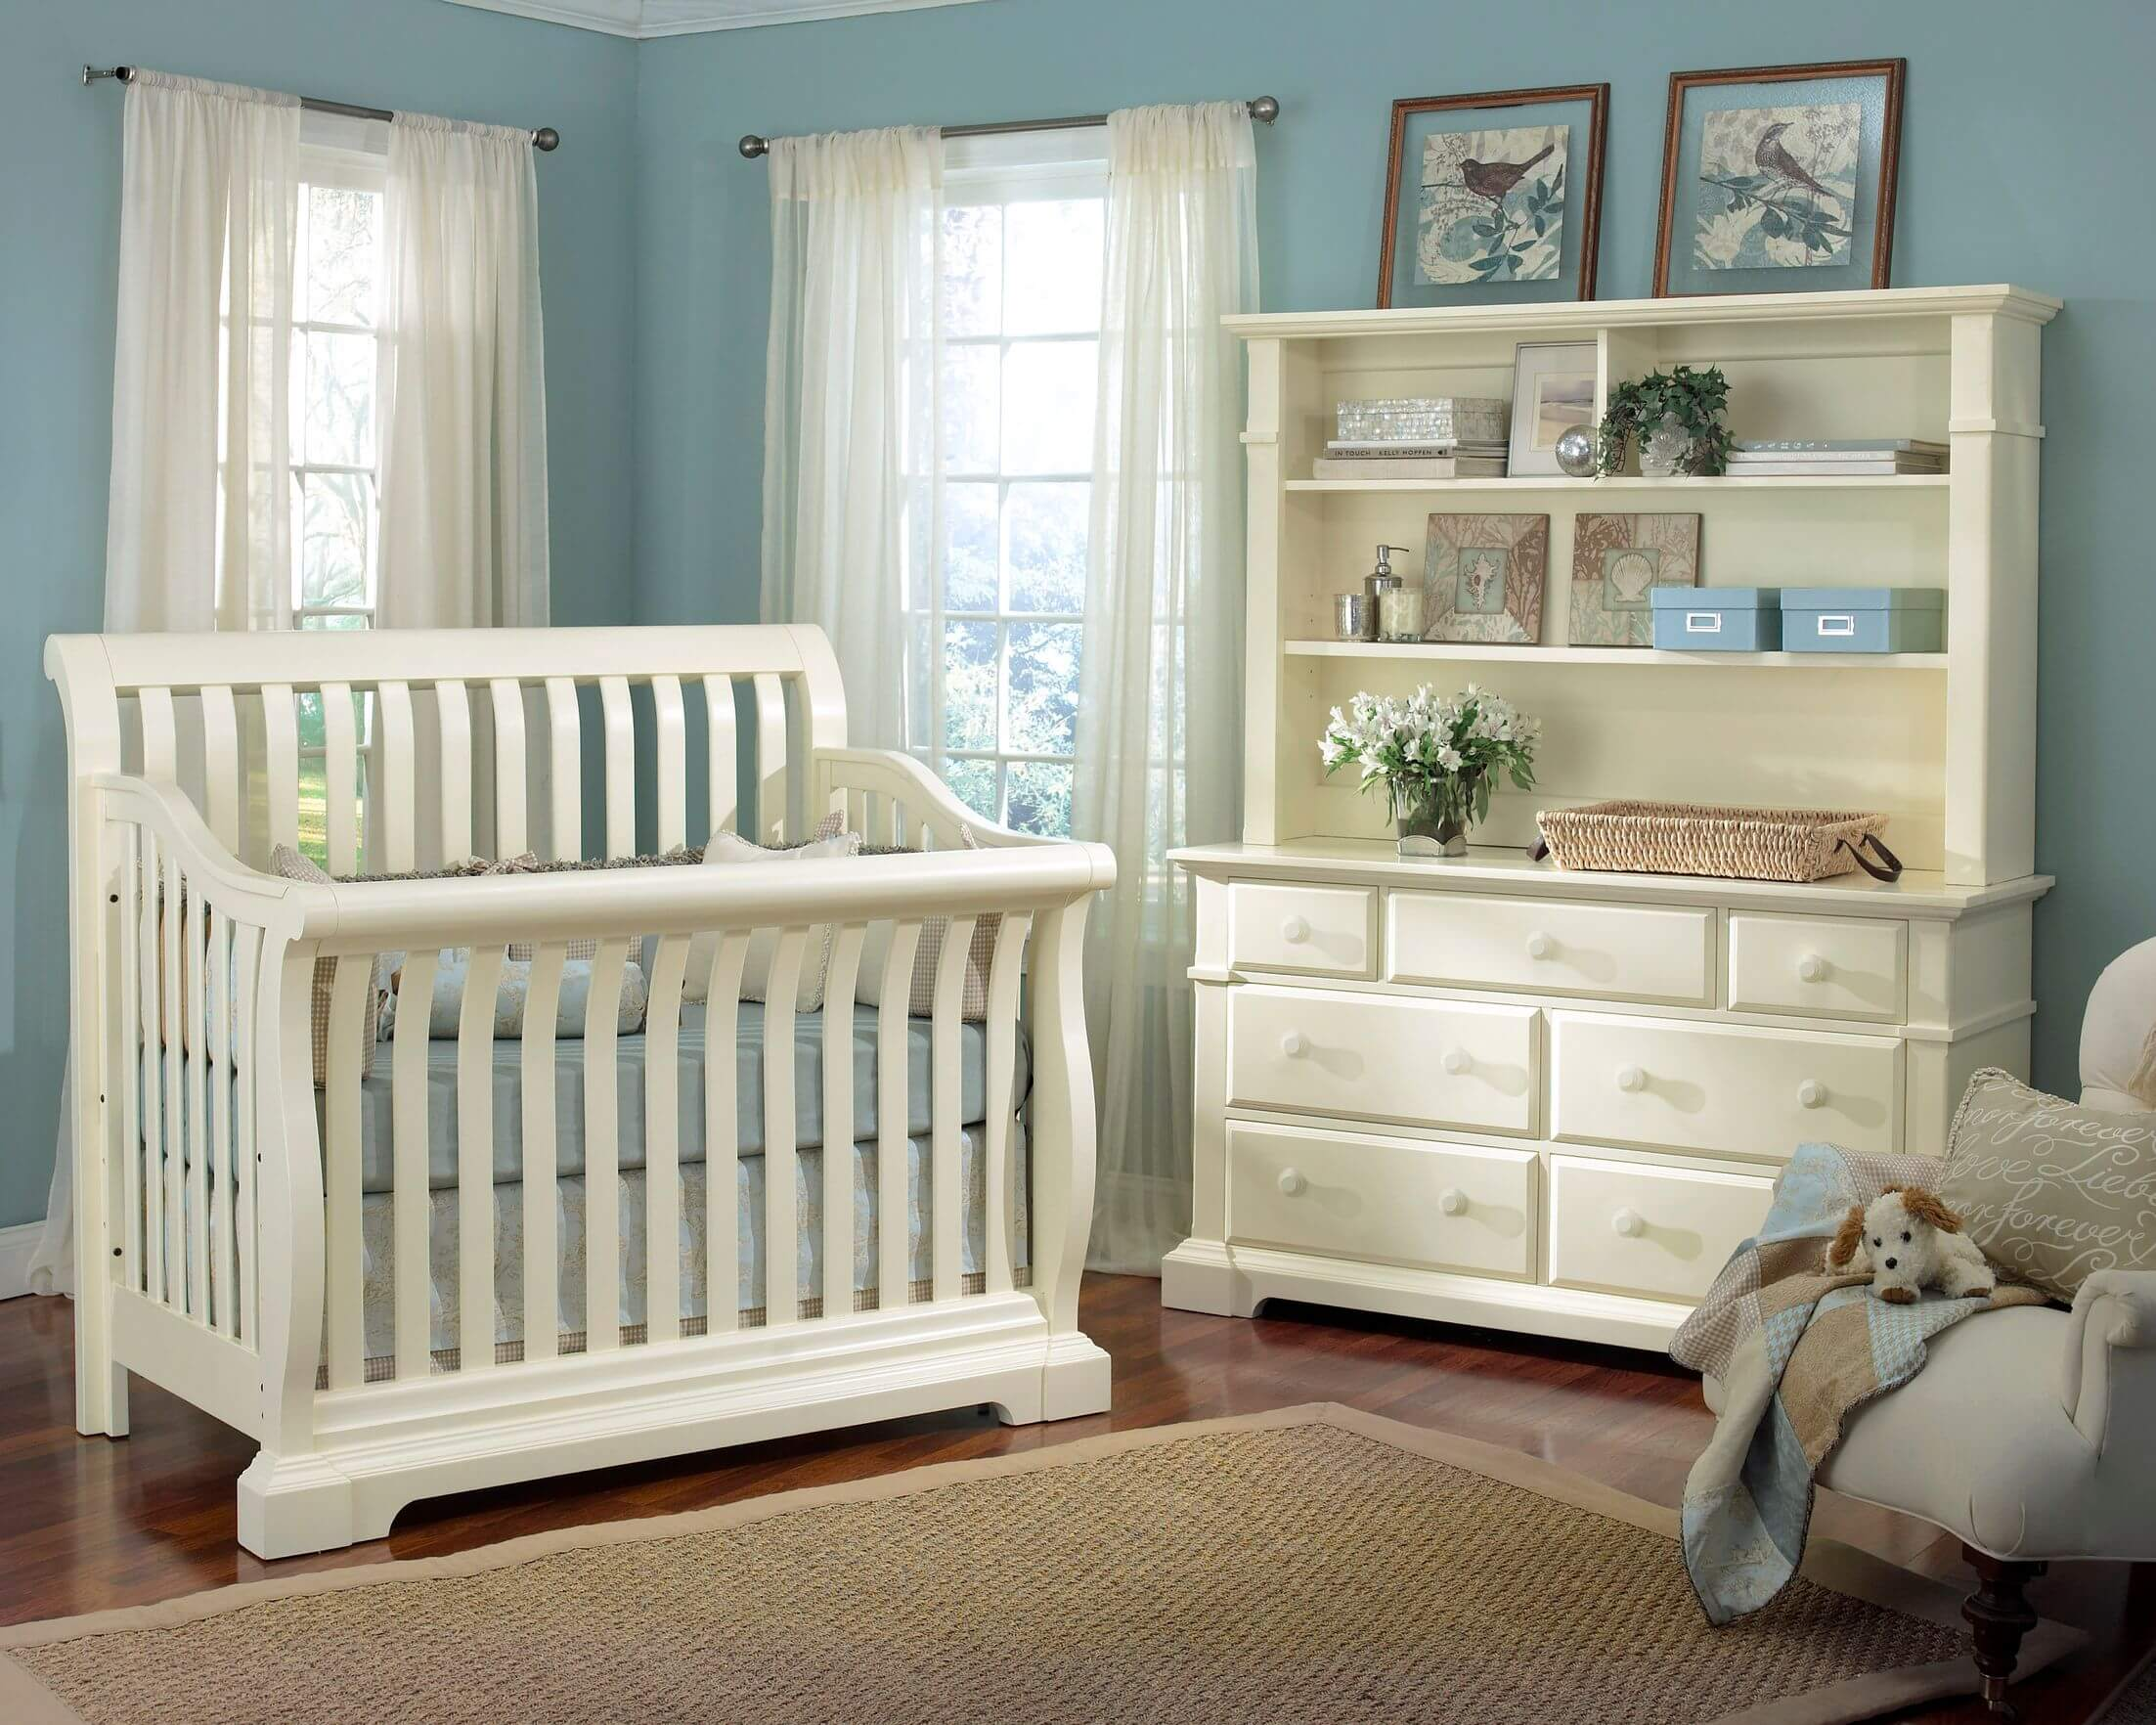 Baby cribs with matching dresser - Baby Cribs With Matching Dresser 1